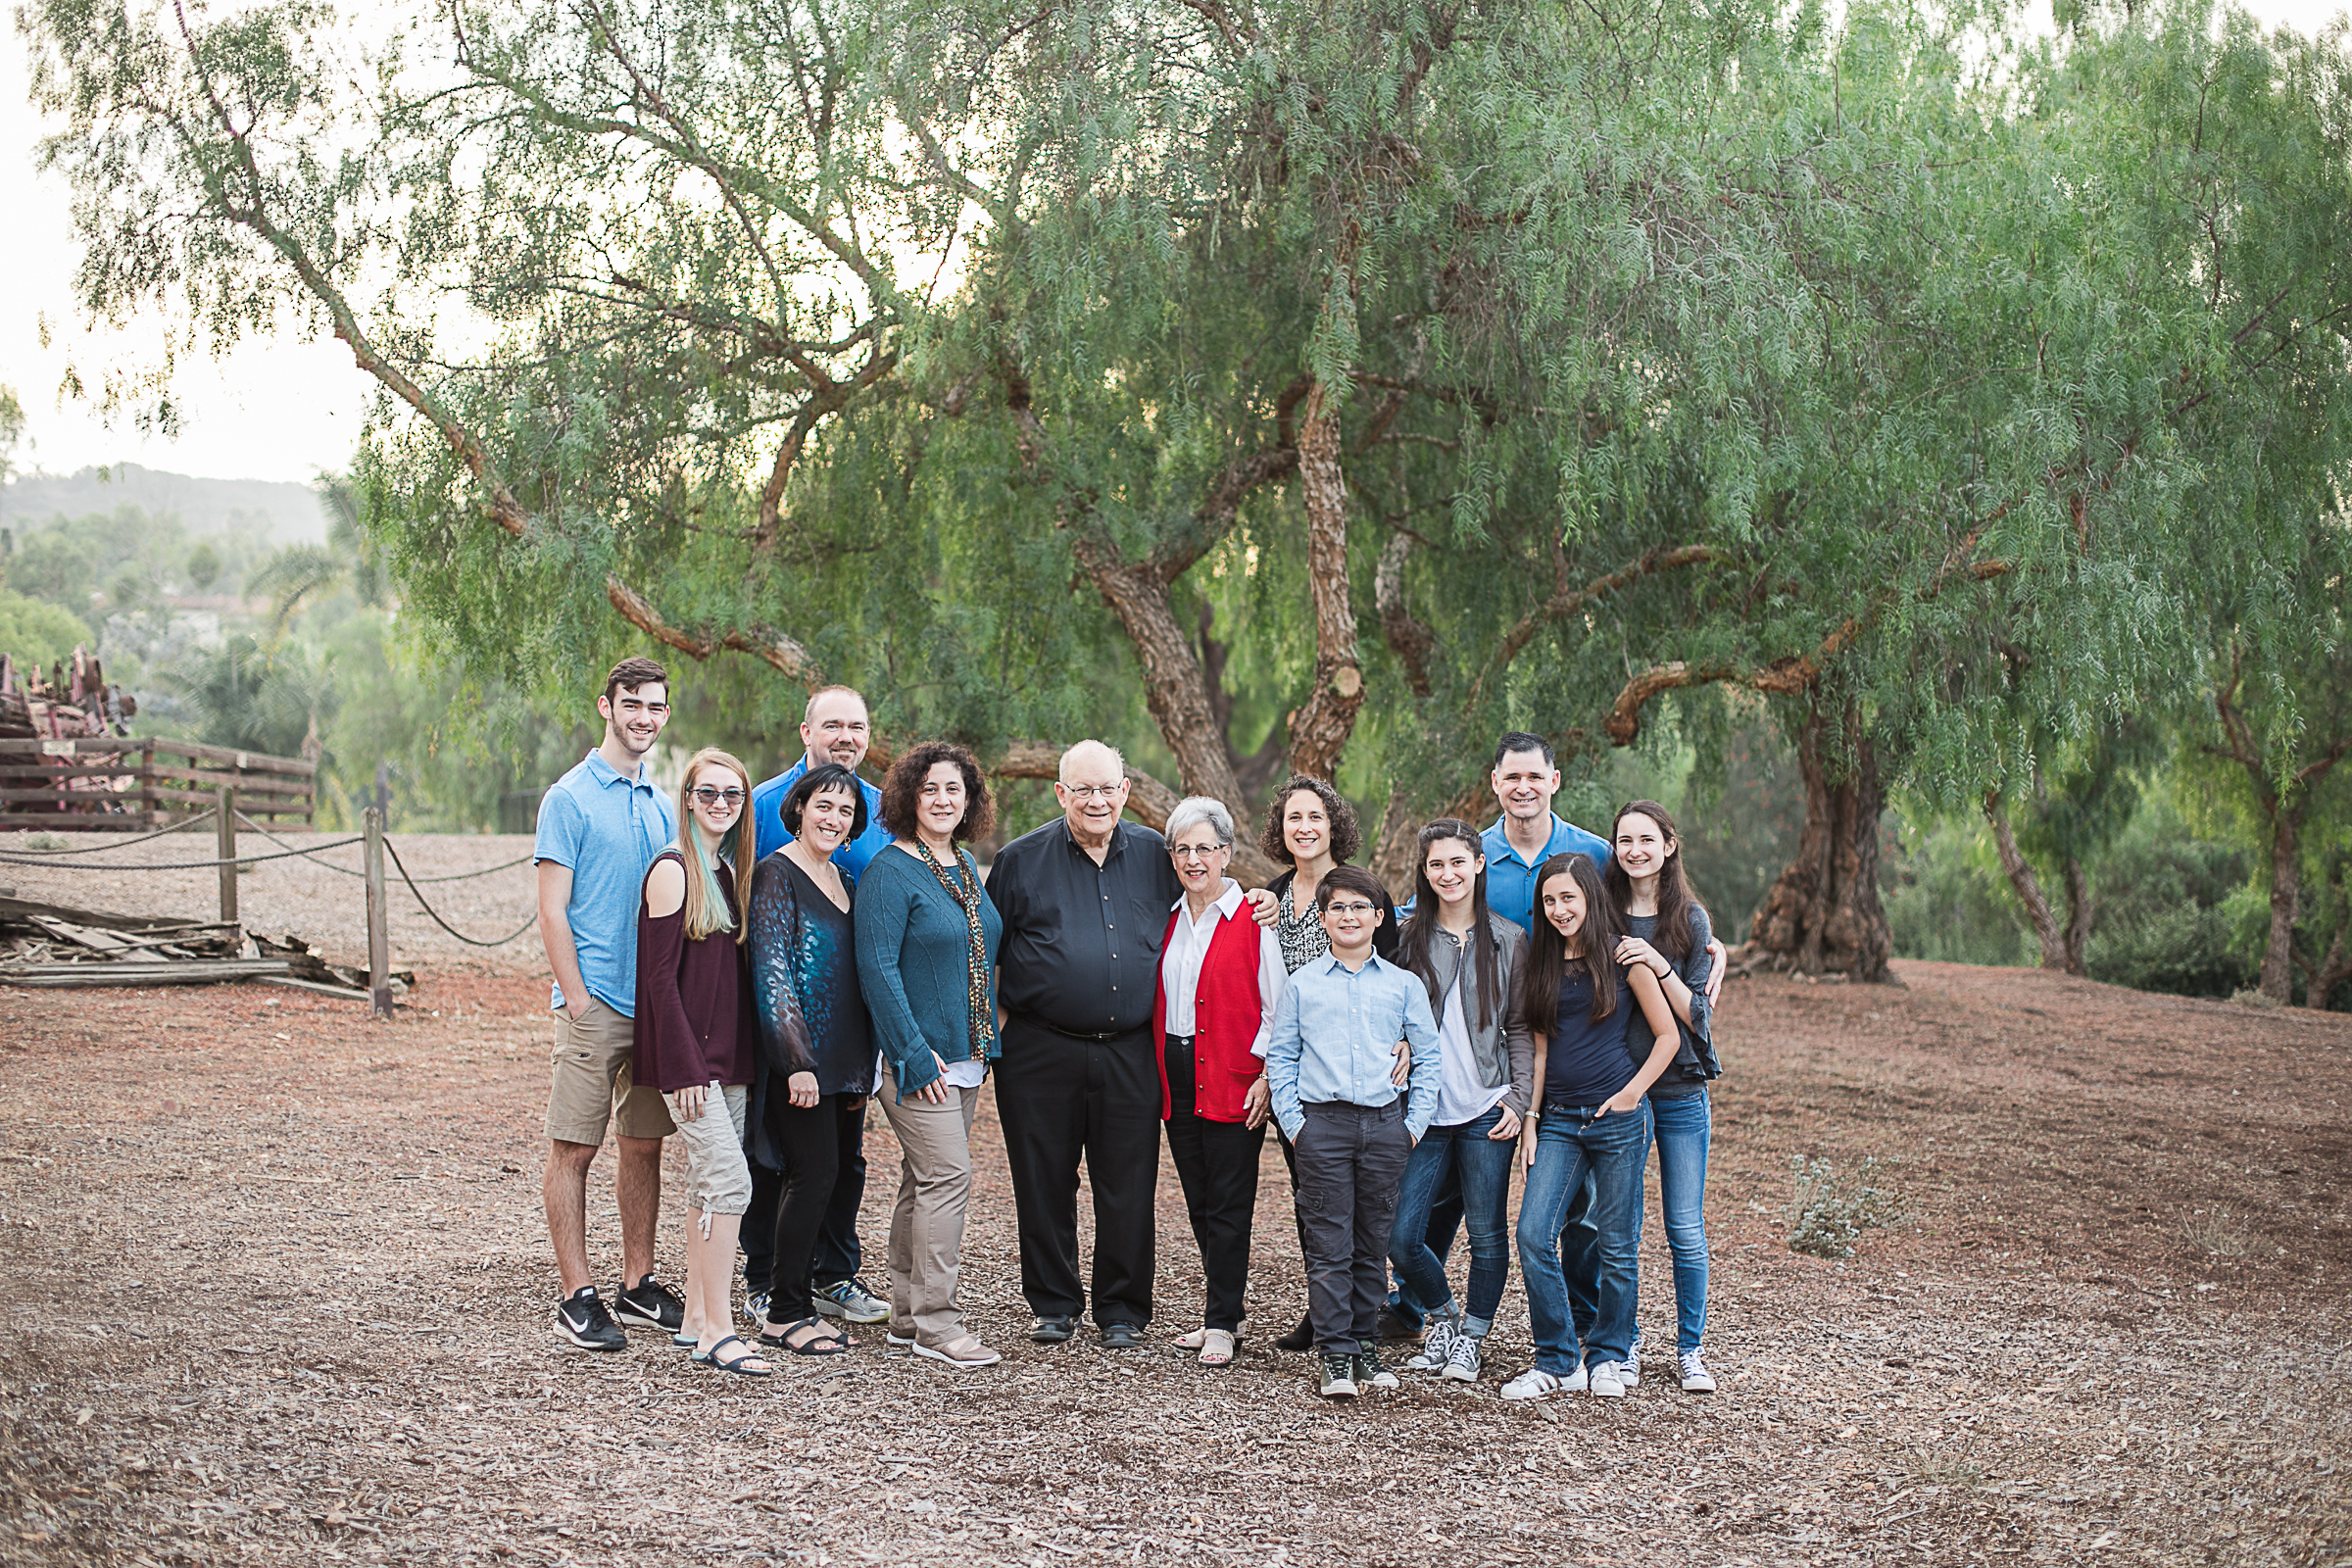 Vioght Anniversary-Family Session Leo Carillo Ranch 2017-21.jpg